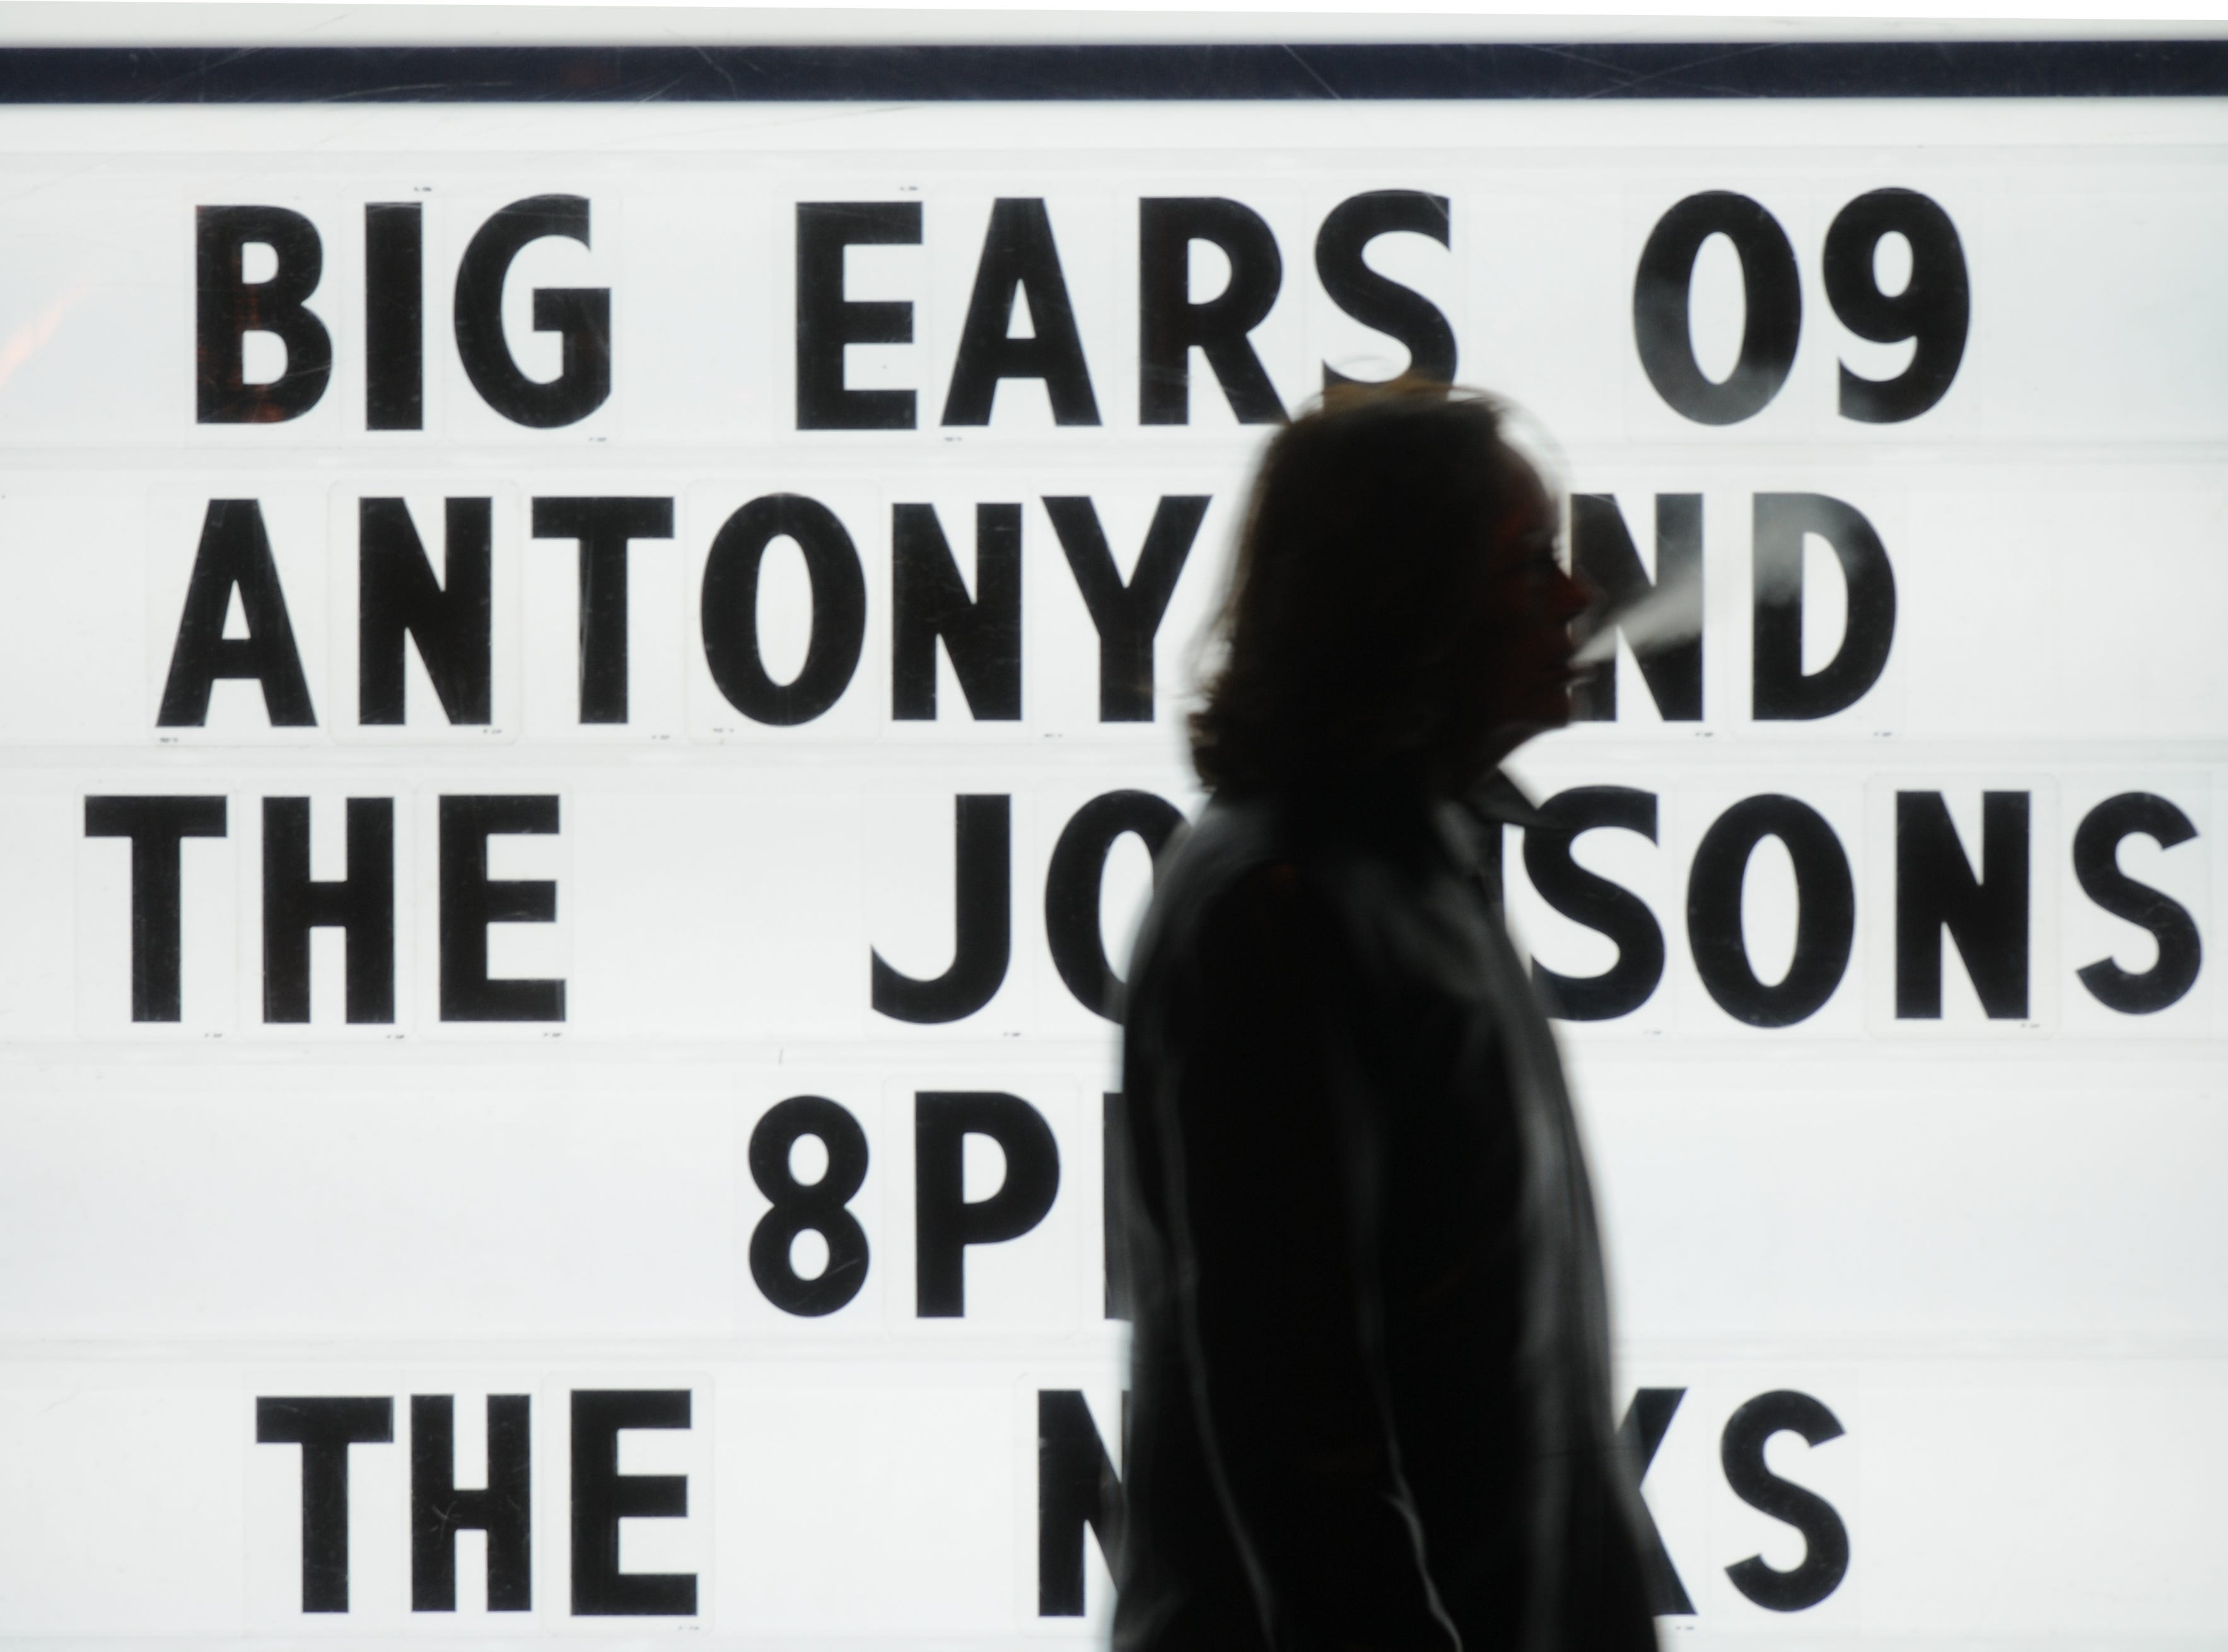 A concert goer walks past the marquee after a show by Antony and the Johnsons during the Big Ears festival on Saturday, Feb. 7, 2009 at the Bijou Theatre.